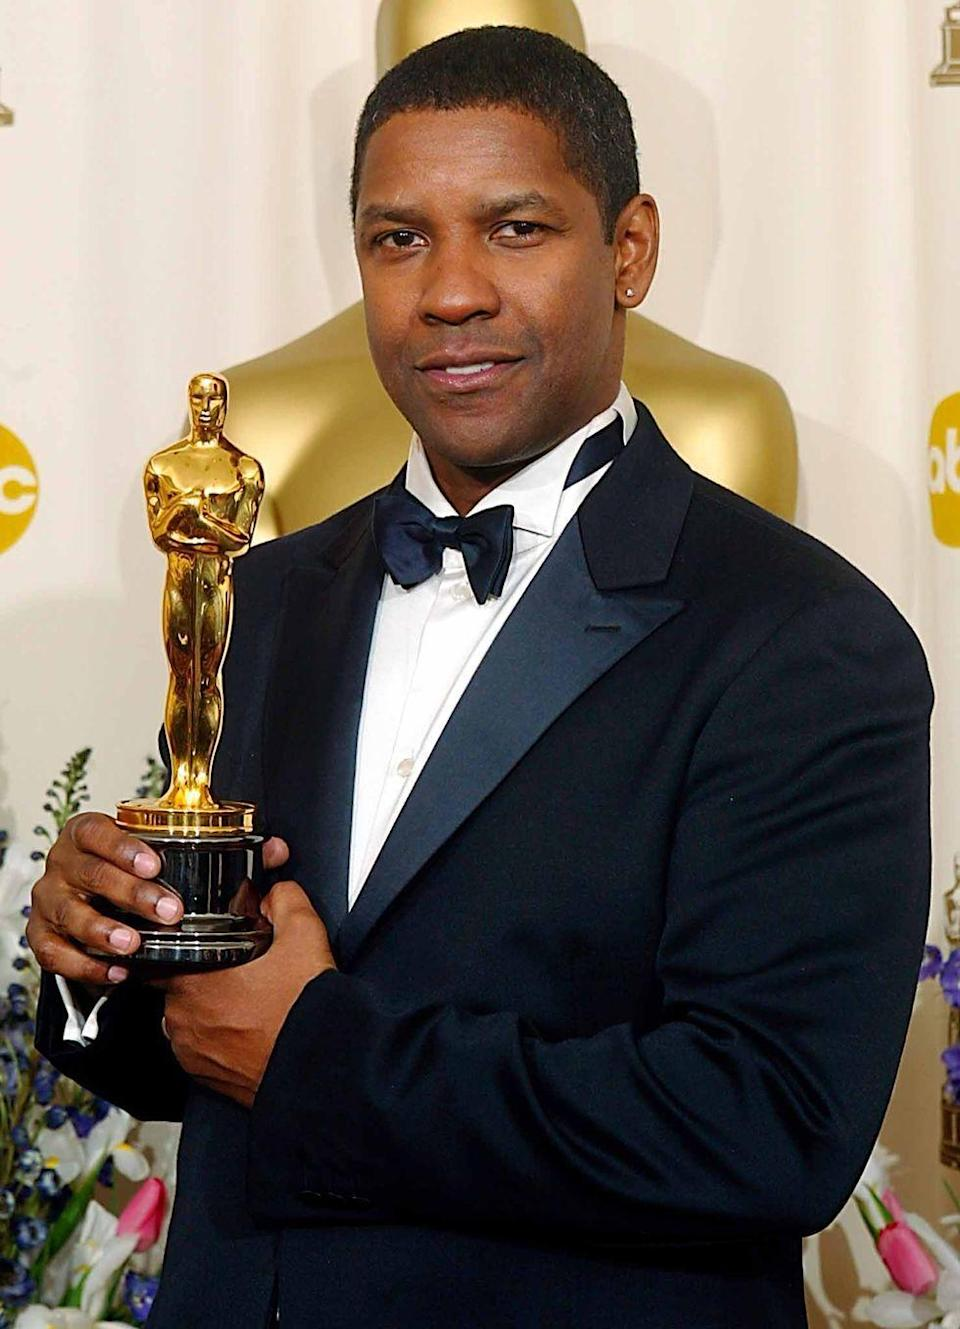 <p>Sure, there were a few '90s missteps along the way (this is, by the way, true for everyone who went to the Oscars between 1989 and 200). But when Denzel delivers, he delivers. </p>